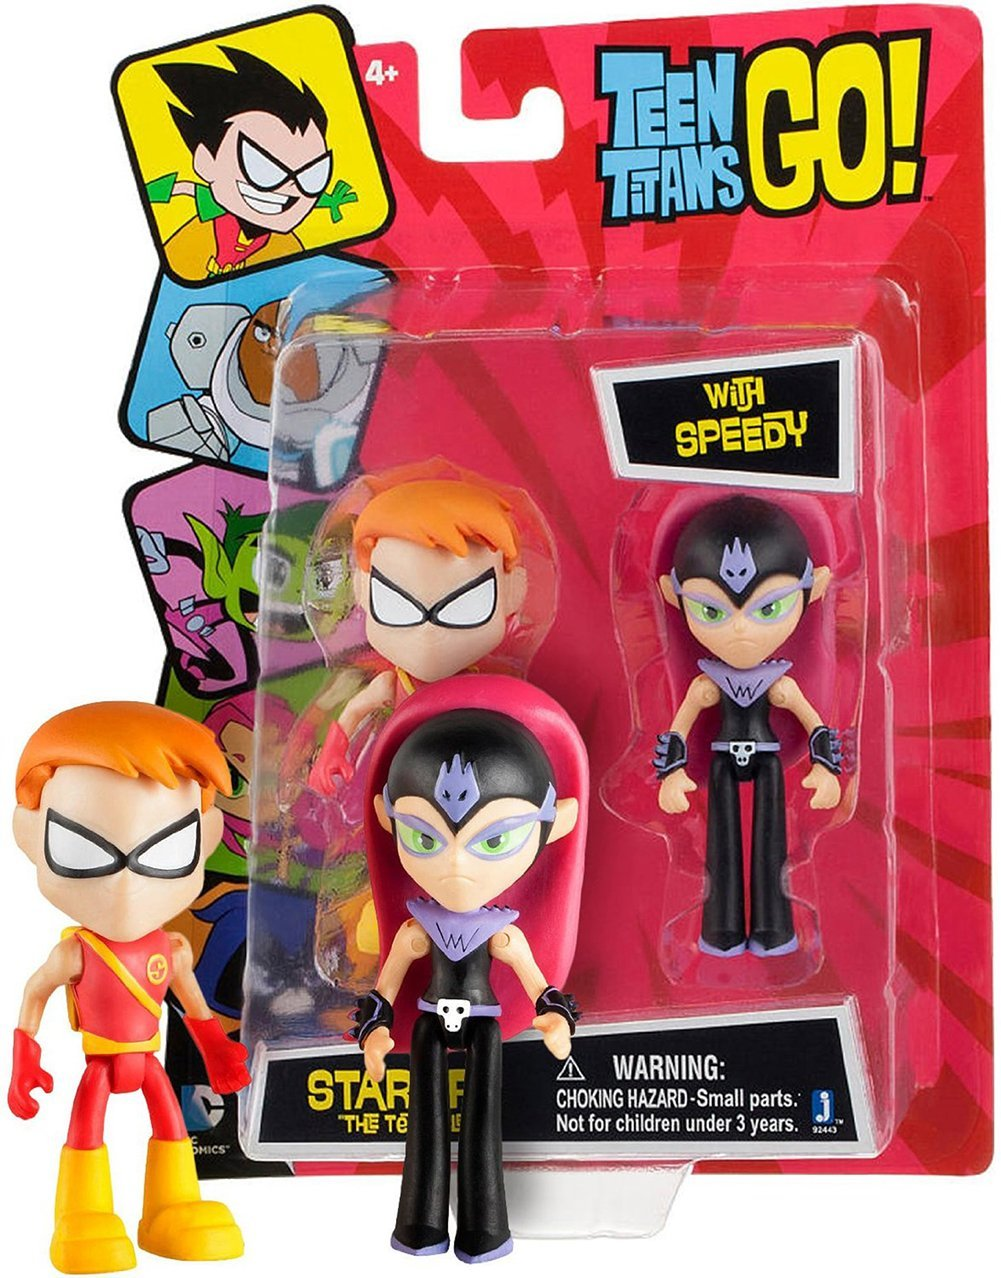 "Teen Titans Go Starfire ""The Terrible"" with Speedy, Starfire the Terrible and Speedy action figure... by"